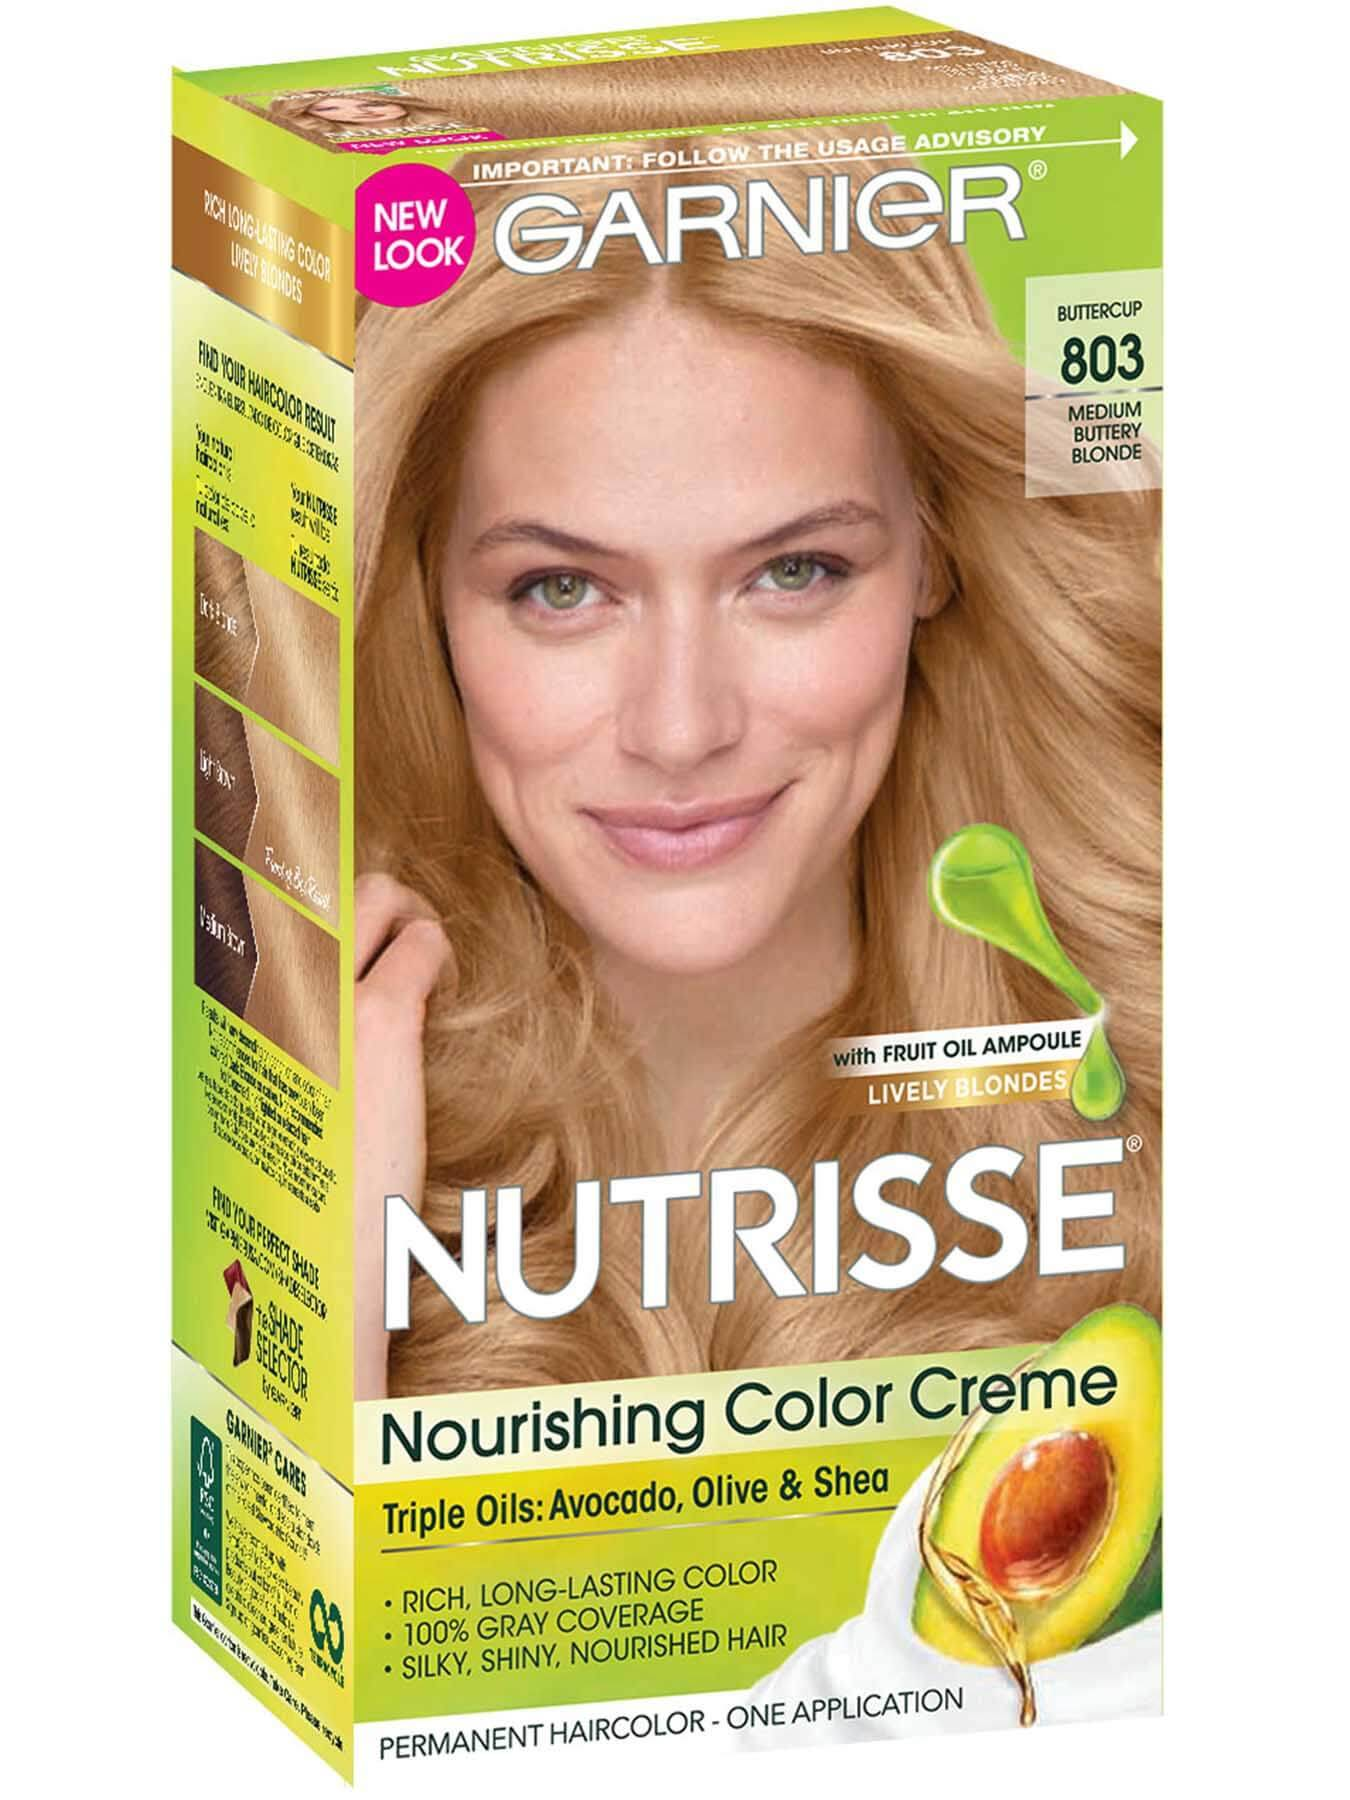 Front view of Nourishing Color Creme 803 - Medium Buttery Blonde.